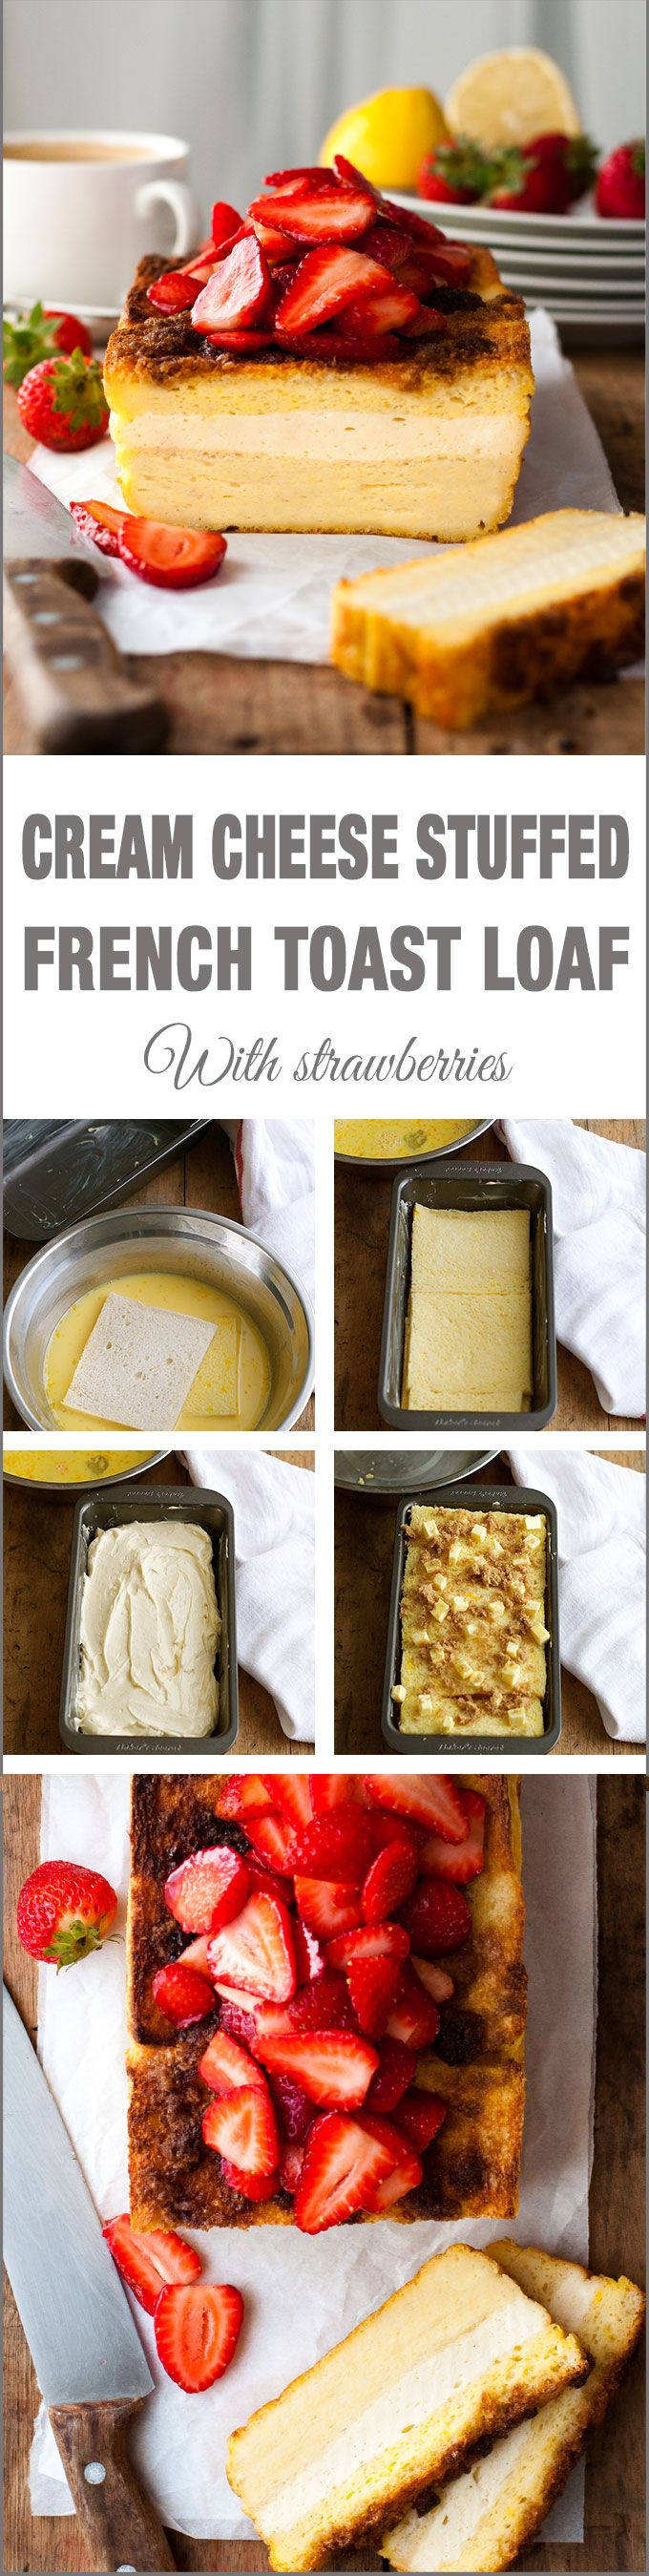 Cream Cheese Stuffed French Toast Loaf - a baked french toast with a cheesecake filling and a buttery, crunchy top piled high with strawberries. Made with plain sandwich bread, so easy and fast!